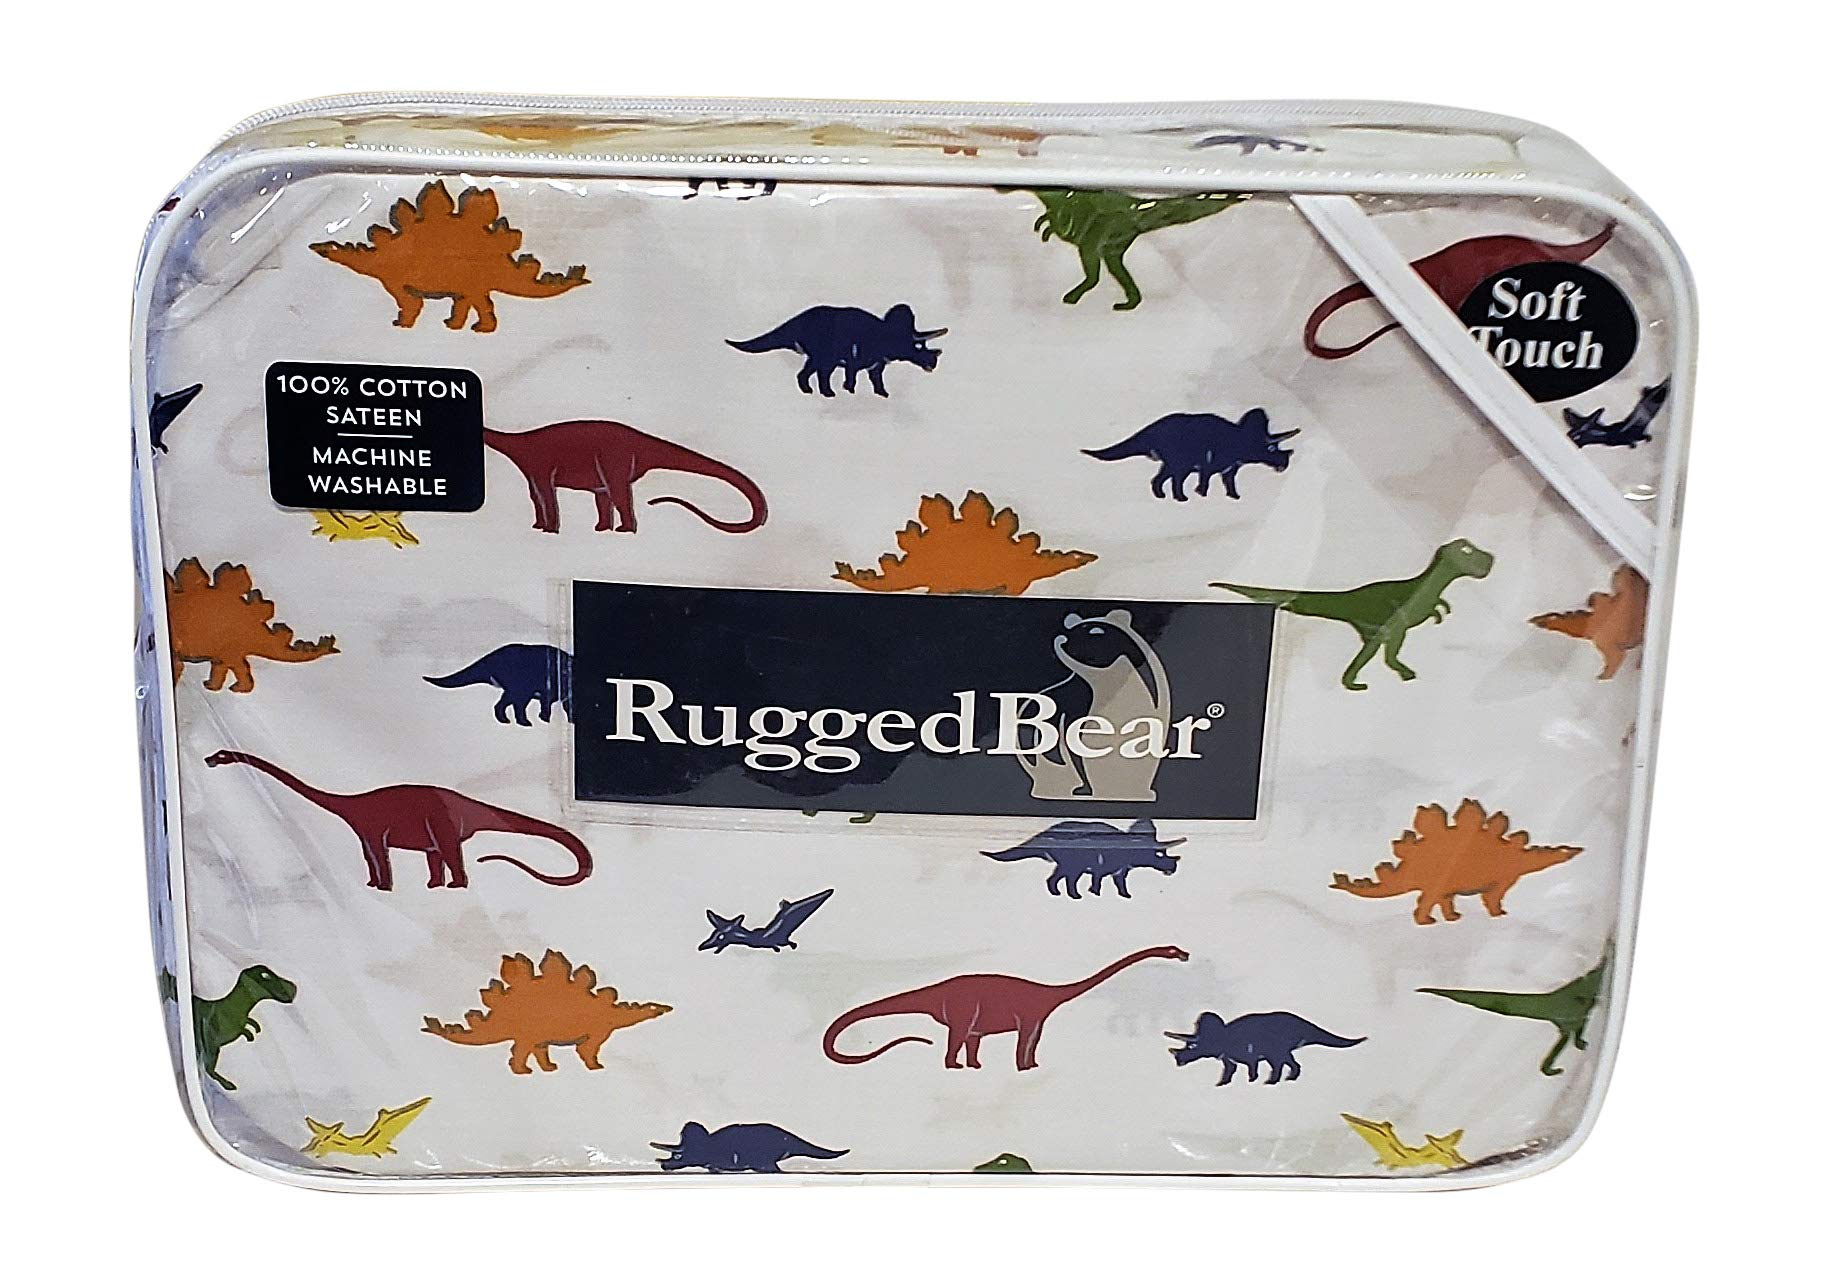 Rugged Bear Bedding 100% Cotton Sateen Sheet Set Multi-Colored Dinosaurs (4 Piece Full Set)